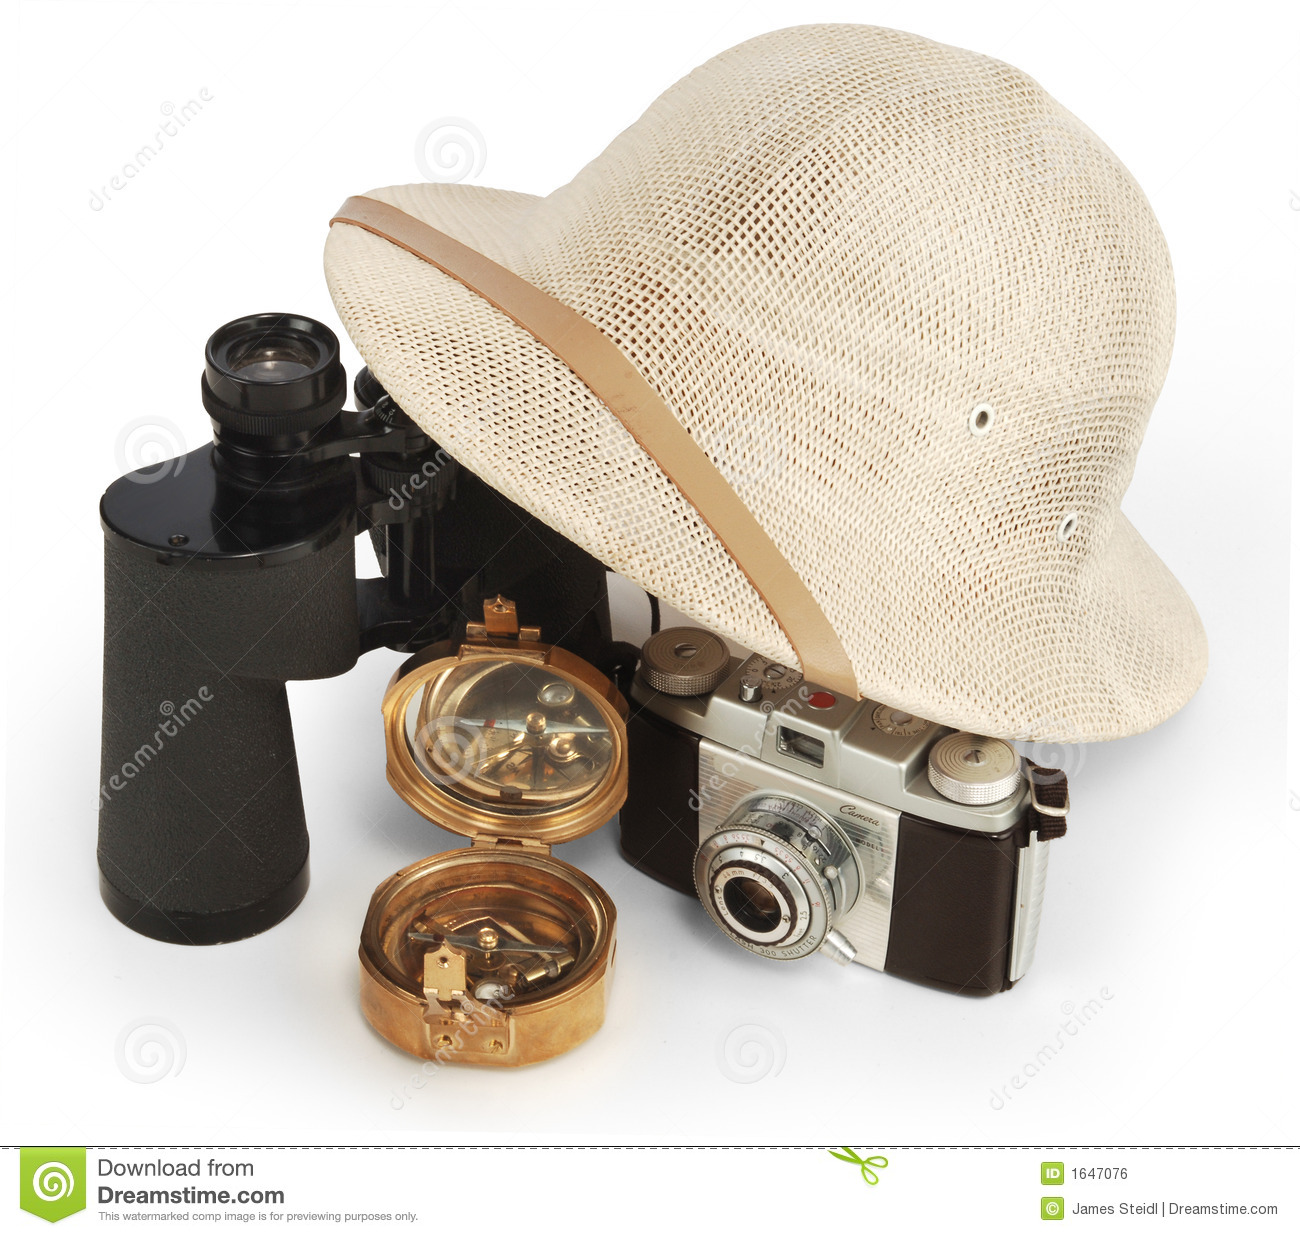 15bd469b683e2 Safari pith helmet leaning against binoculars isolated on white background  with brass compass and vintage view camera